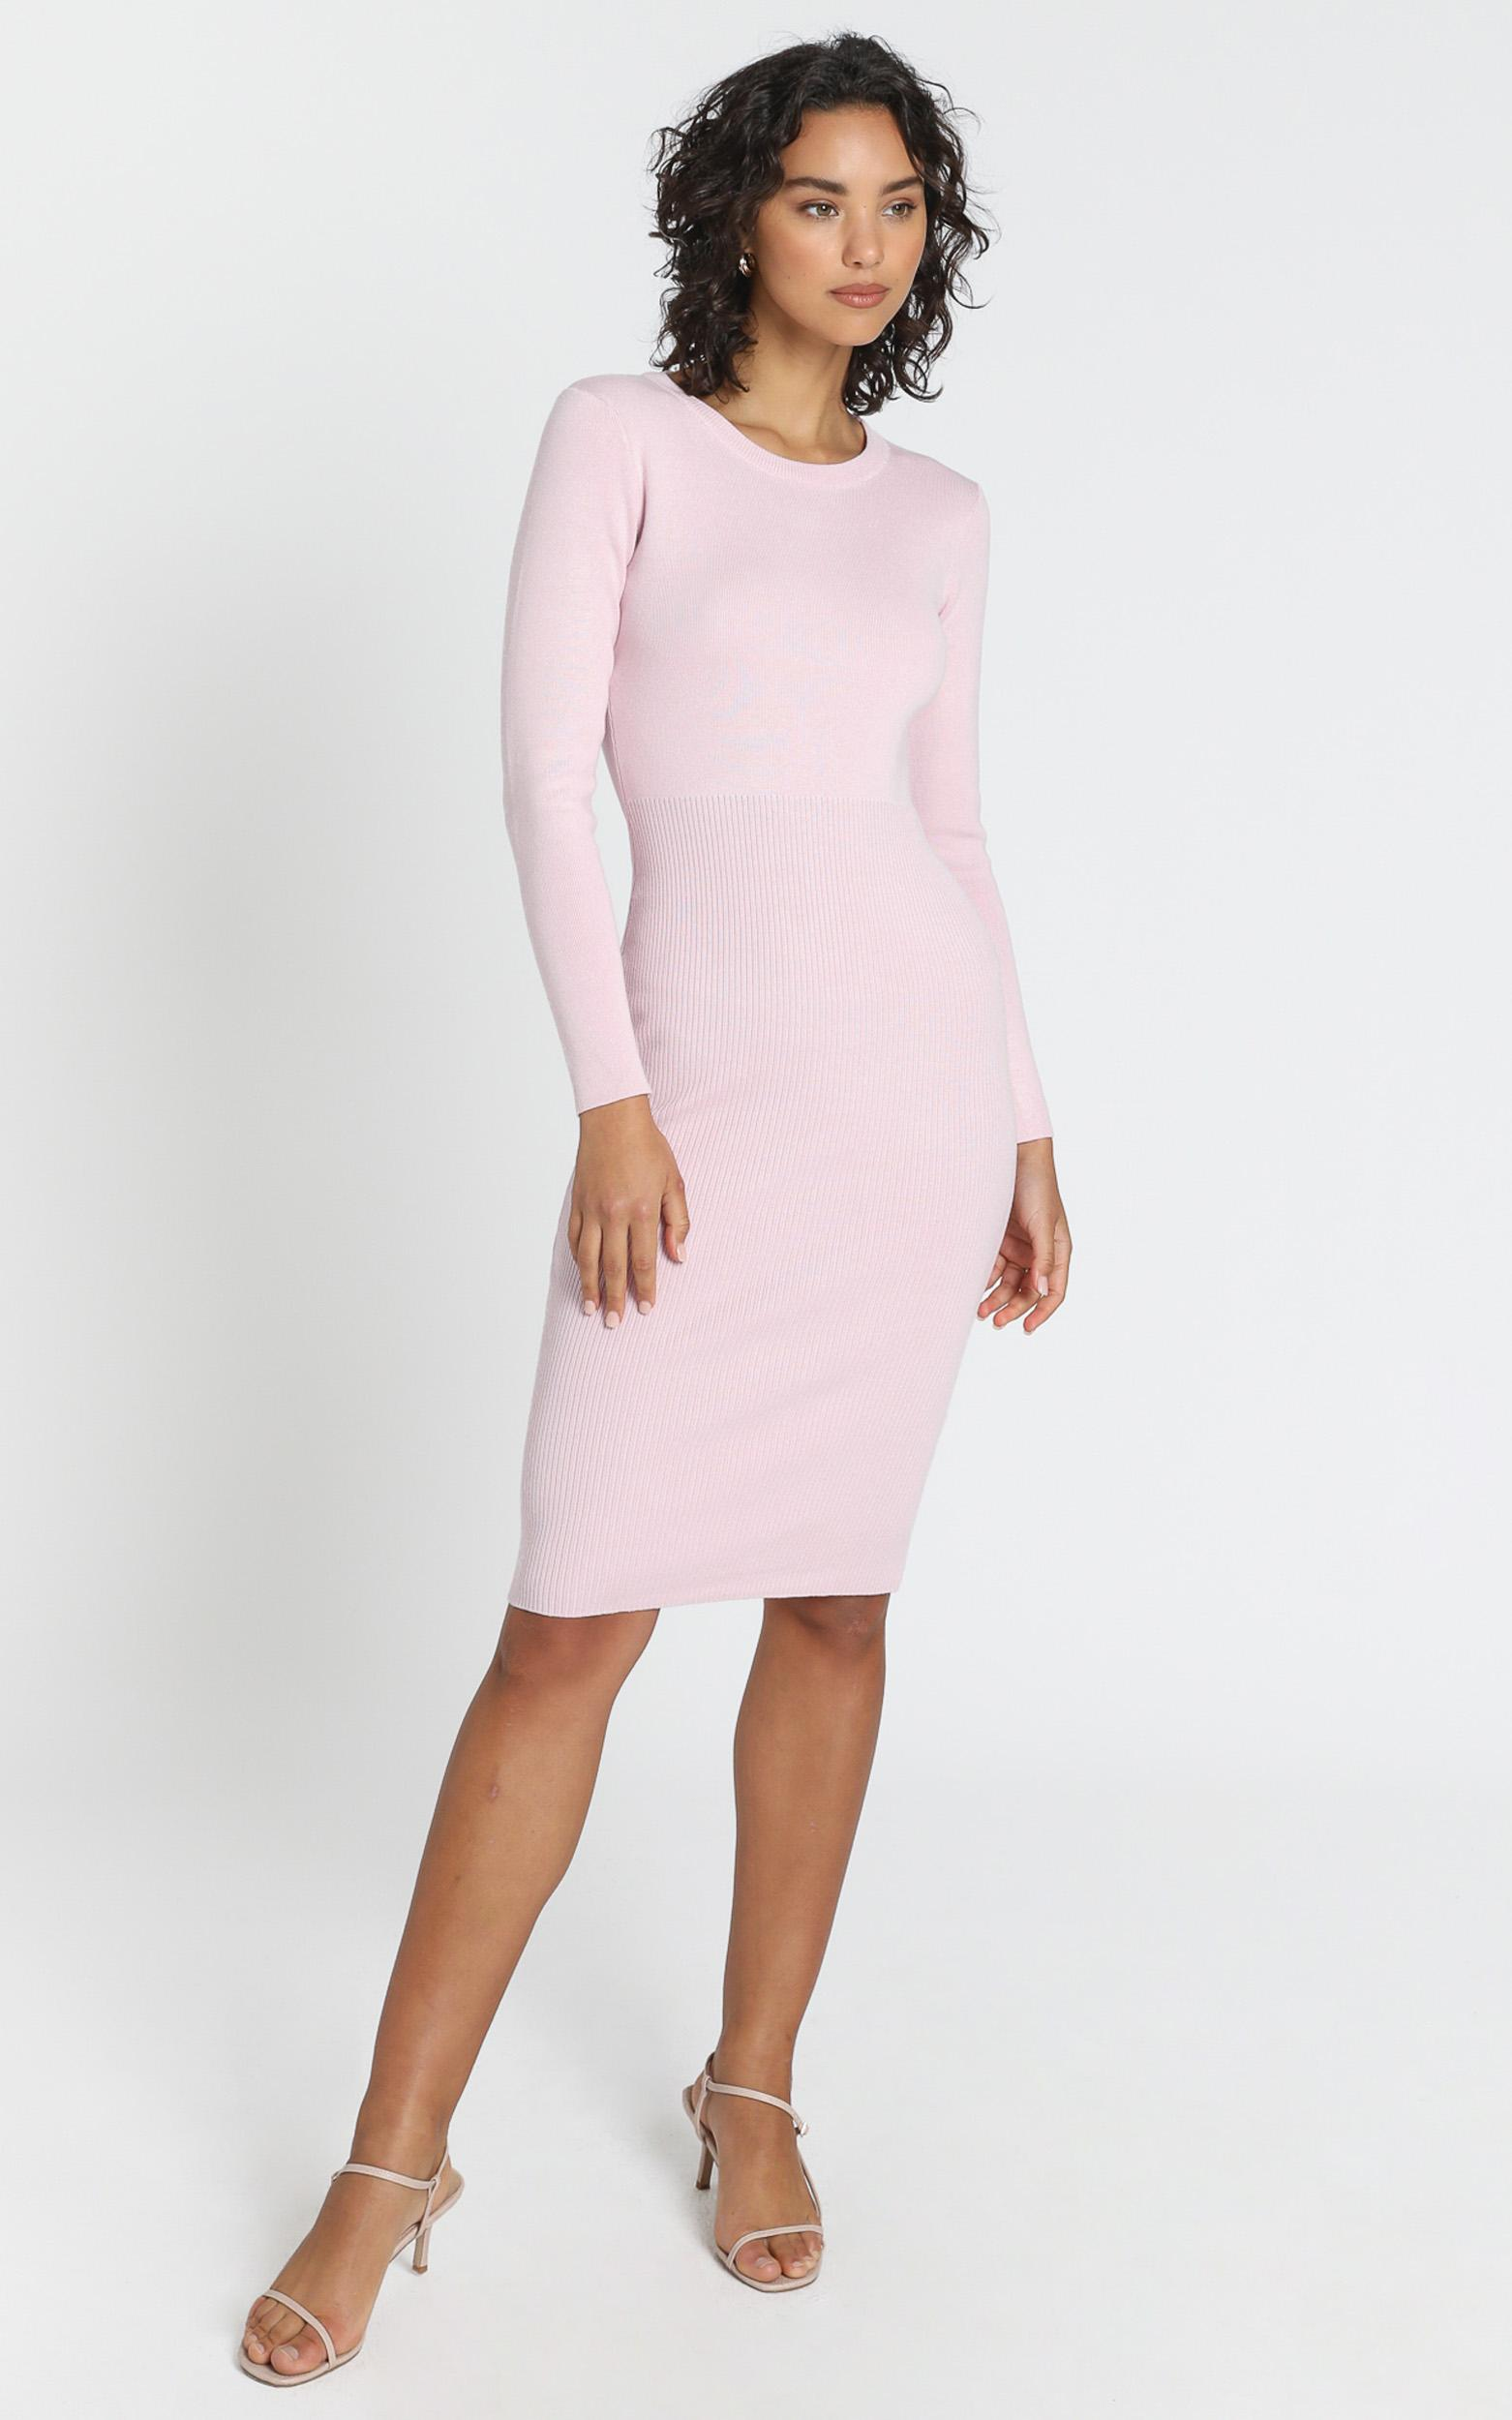 Irina Dress in Baby Pink - XS/S, Pink, hi-res image number null